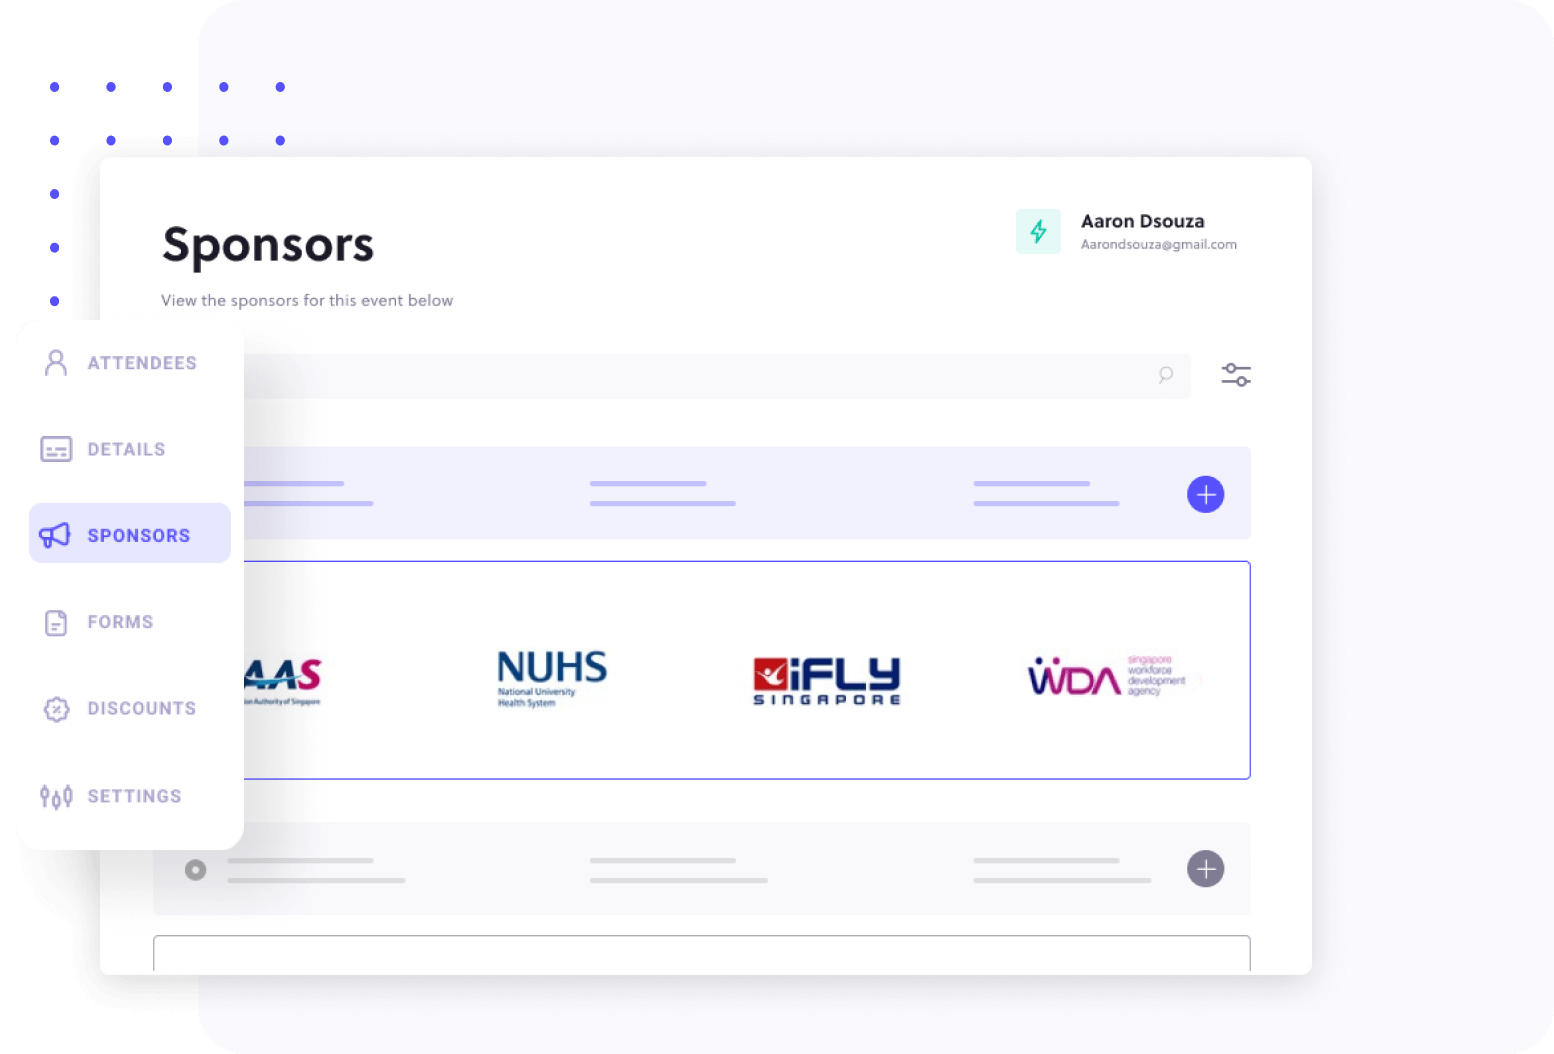 Dashboard showcasing the potential sponsors of the virtual event